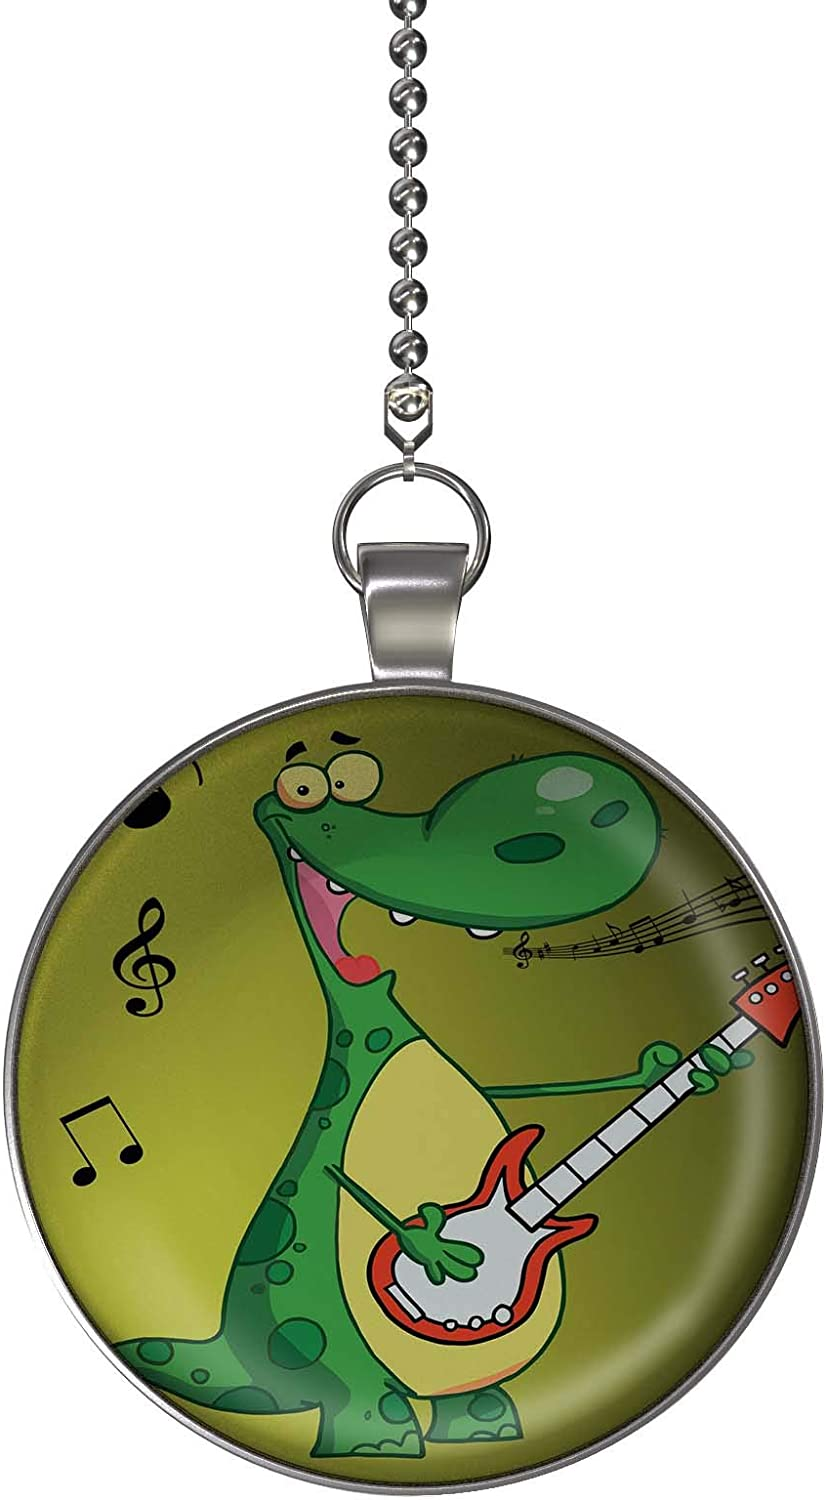 Gotham Decor Rock and Roll Dinosaur Fan//Light Pull Pendant with Chain